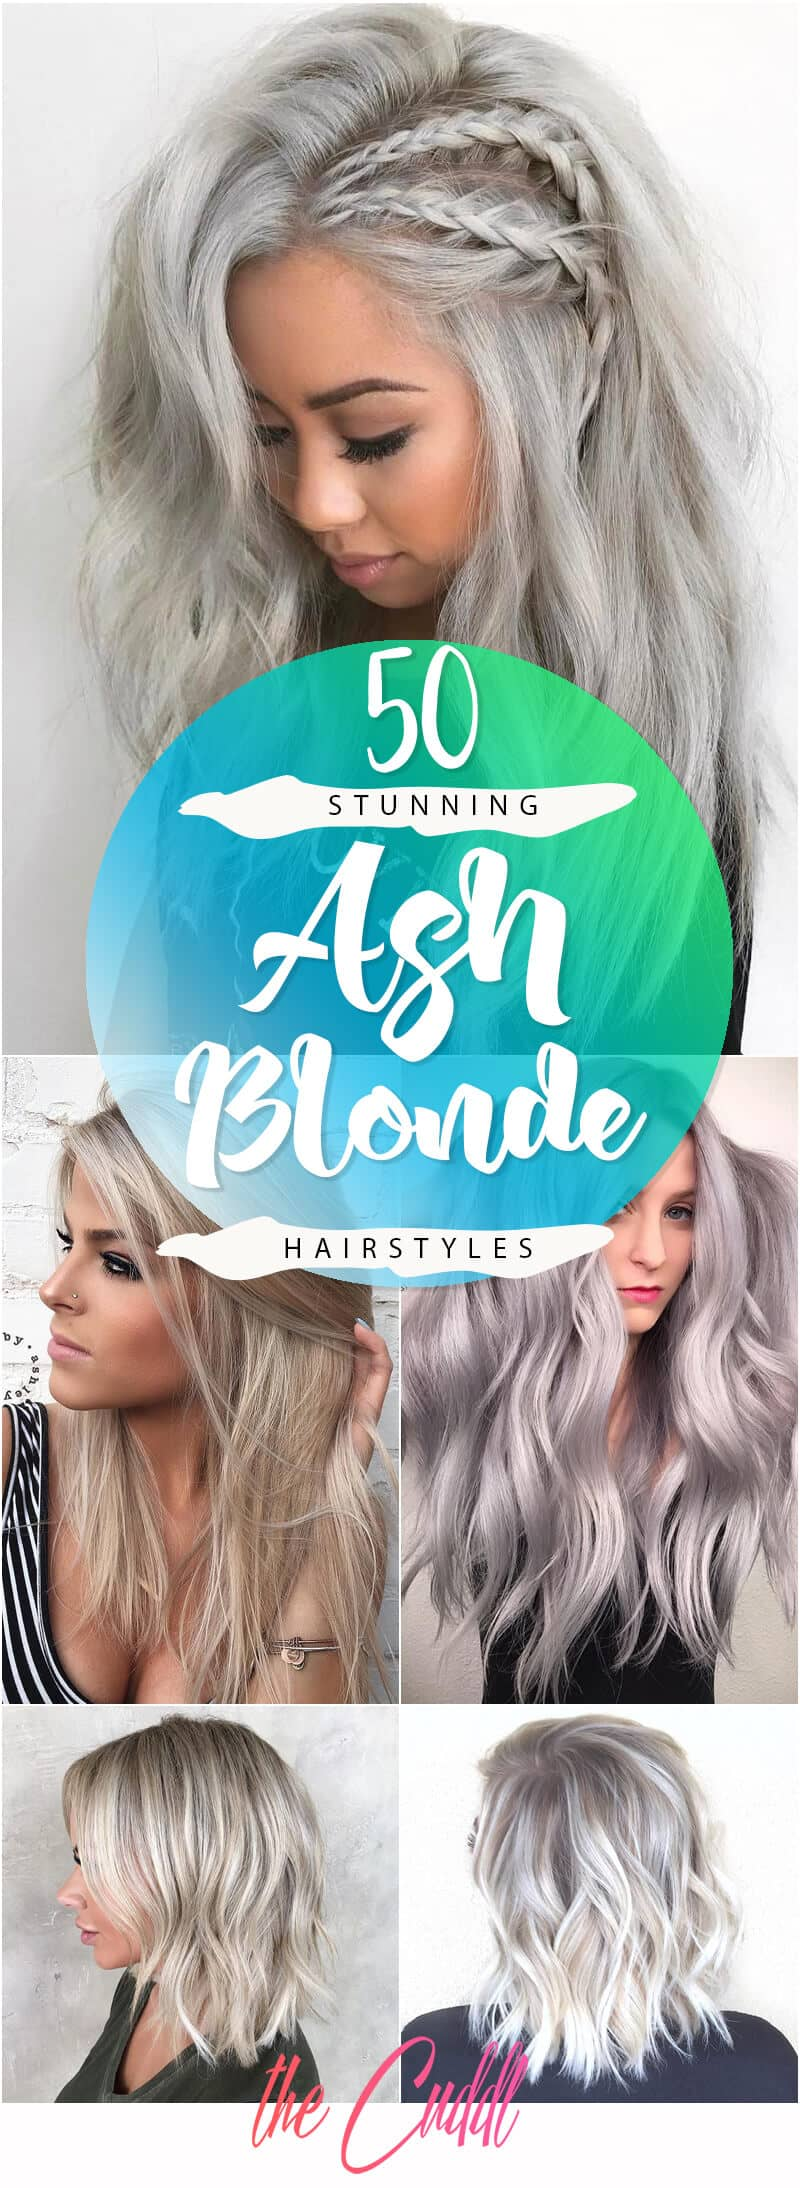 50 Unforgettable Ash Blonde Hairstyles to Inspire You